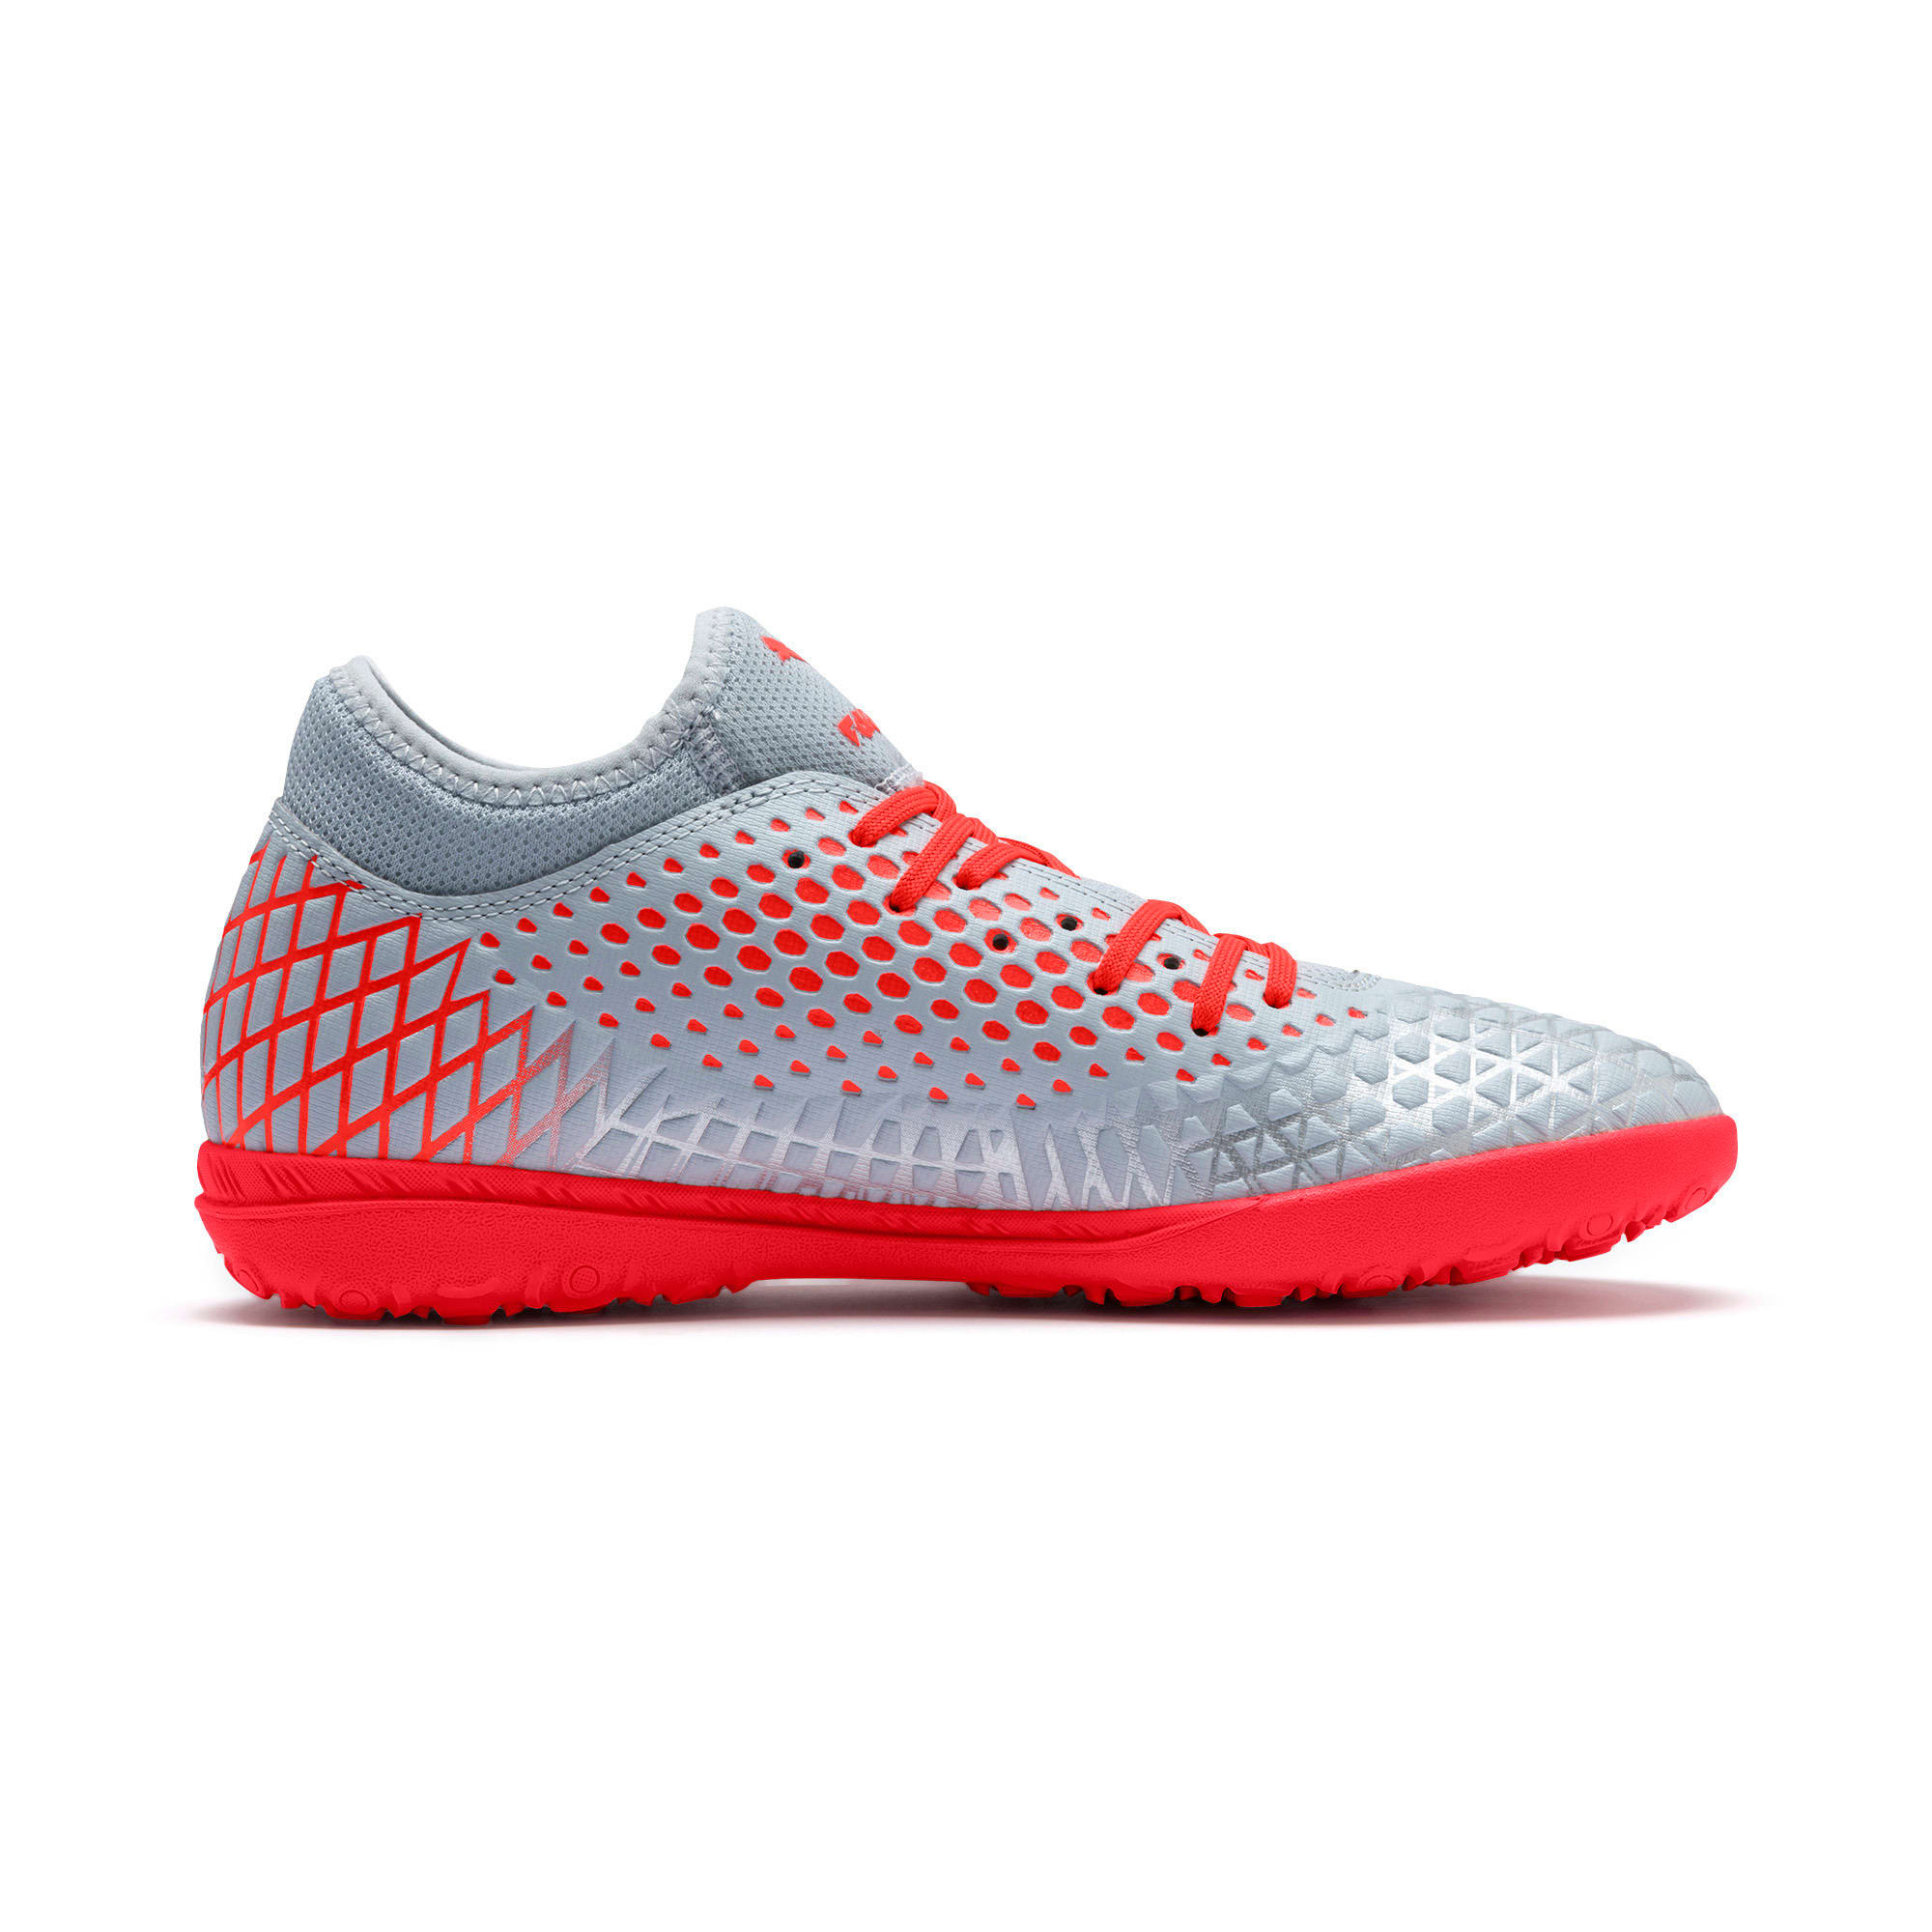 Thumbnail 6 of FUTURE 4.4 TT Herren Fußballschuhe, Glacial Blue-Nrgy Red, medium